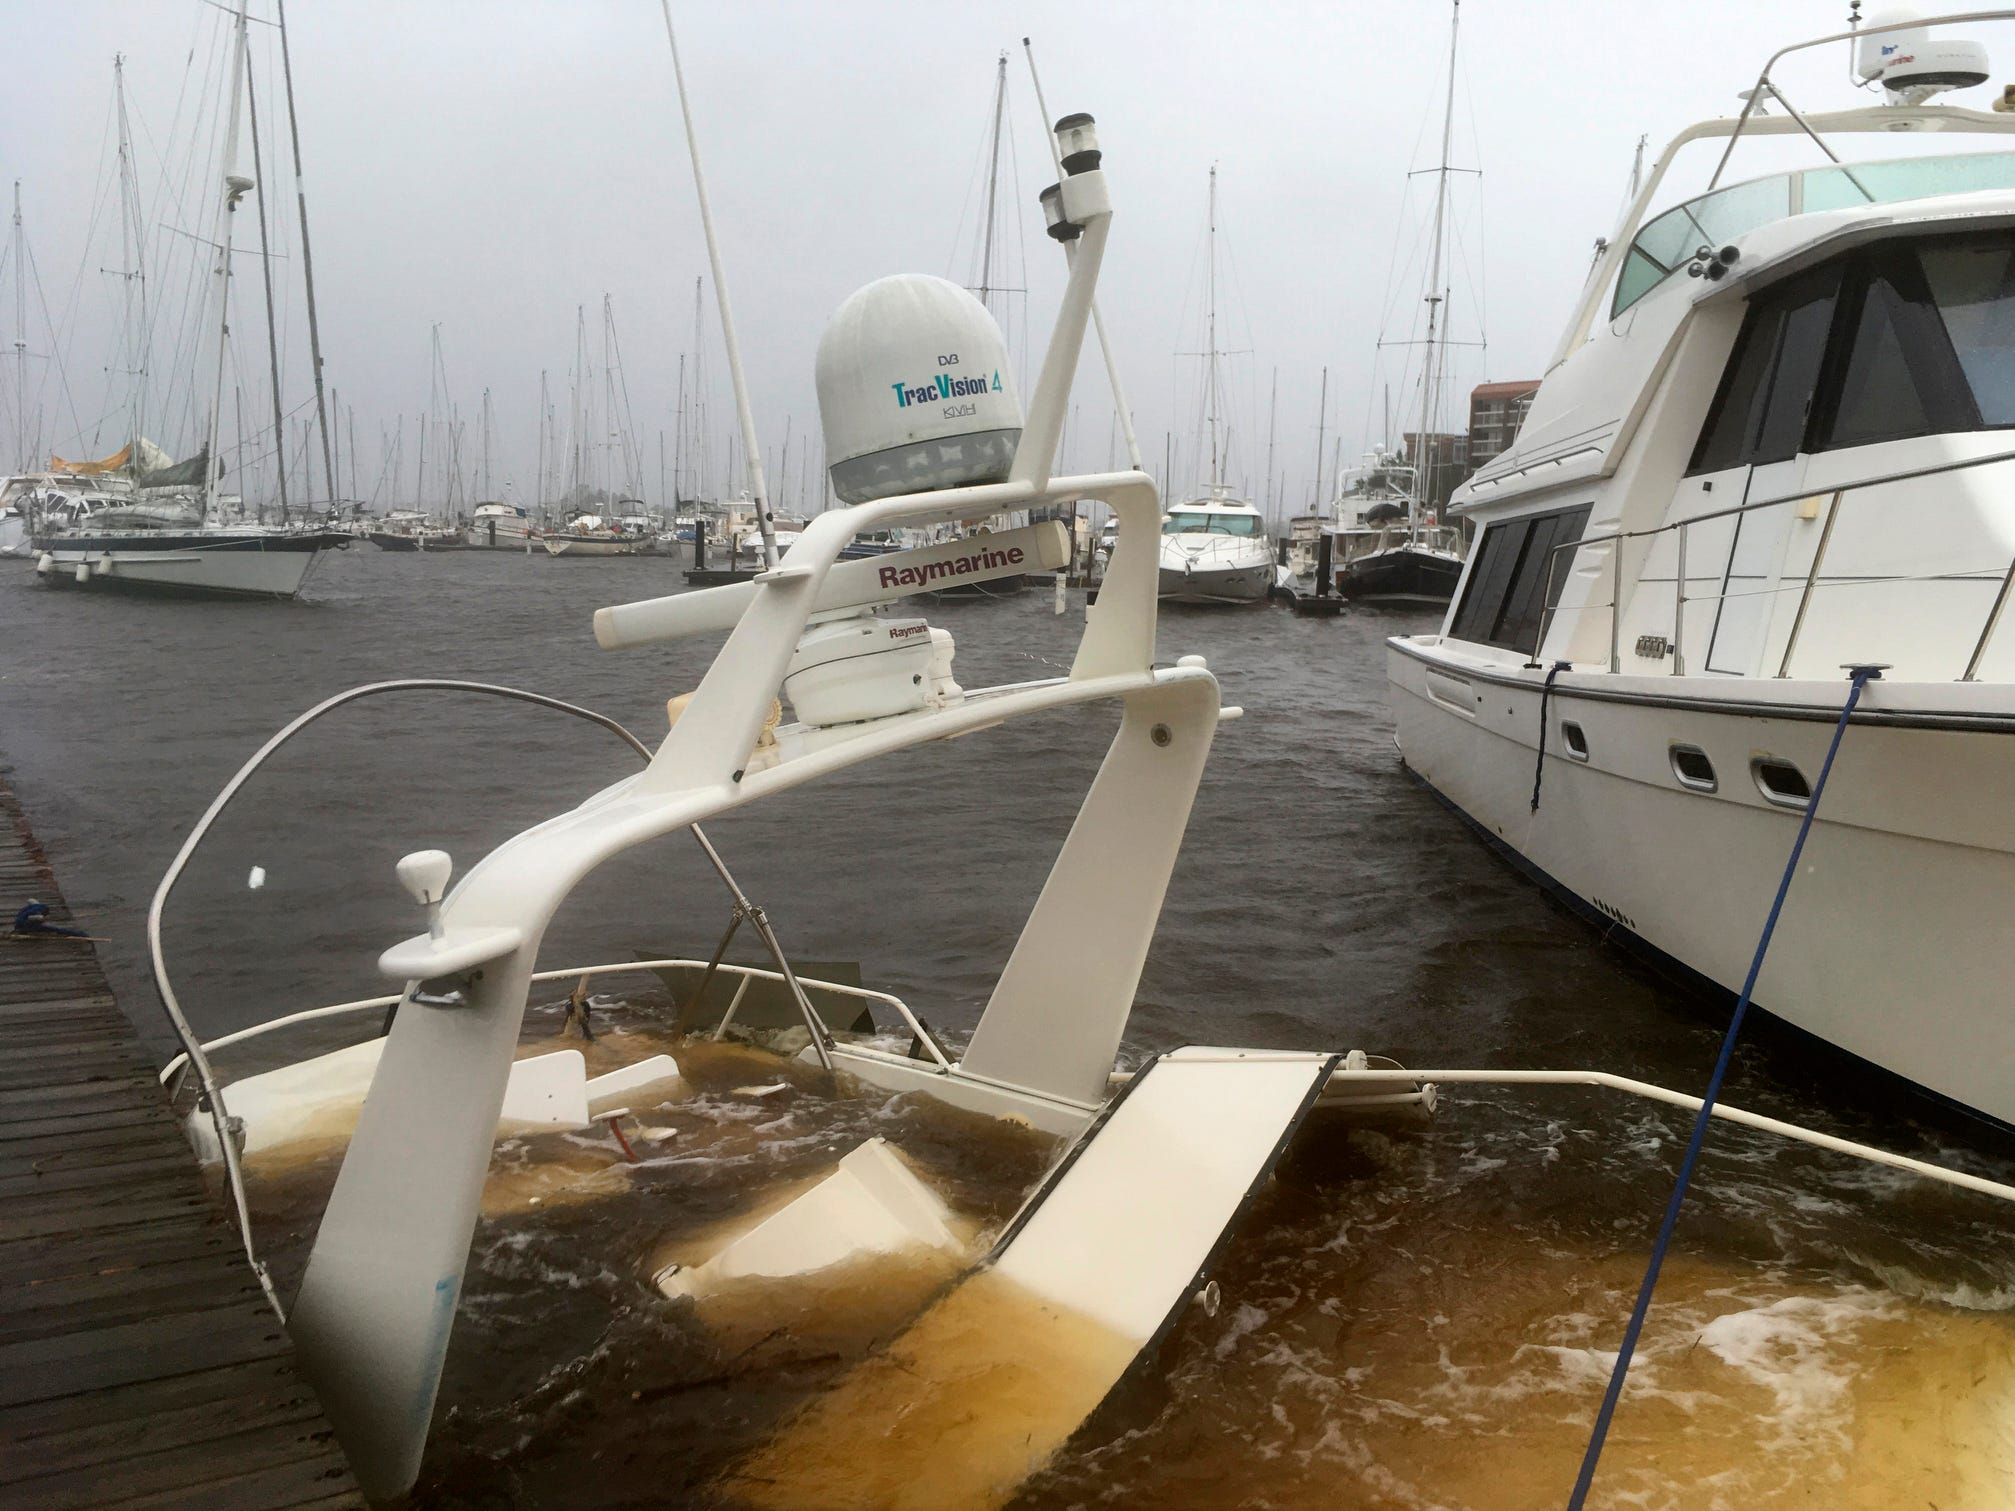 The mast of a sunken boat sits at a dock at the Grand View Marina in New Bern, N.C., on Friday.  Winds and rains from Hurricane Florence caused the Neuse River to swell, swamping the coastal city.